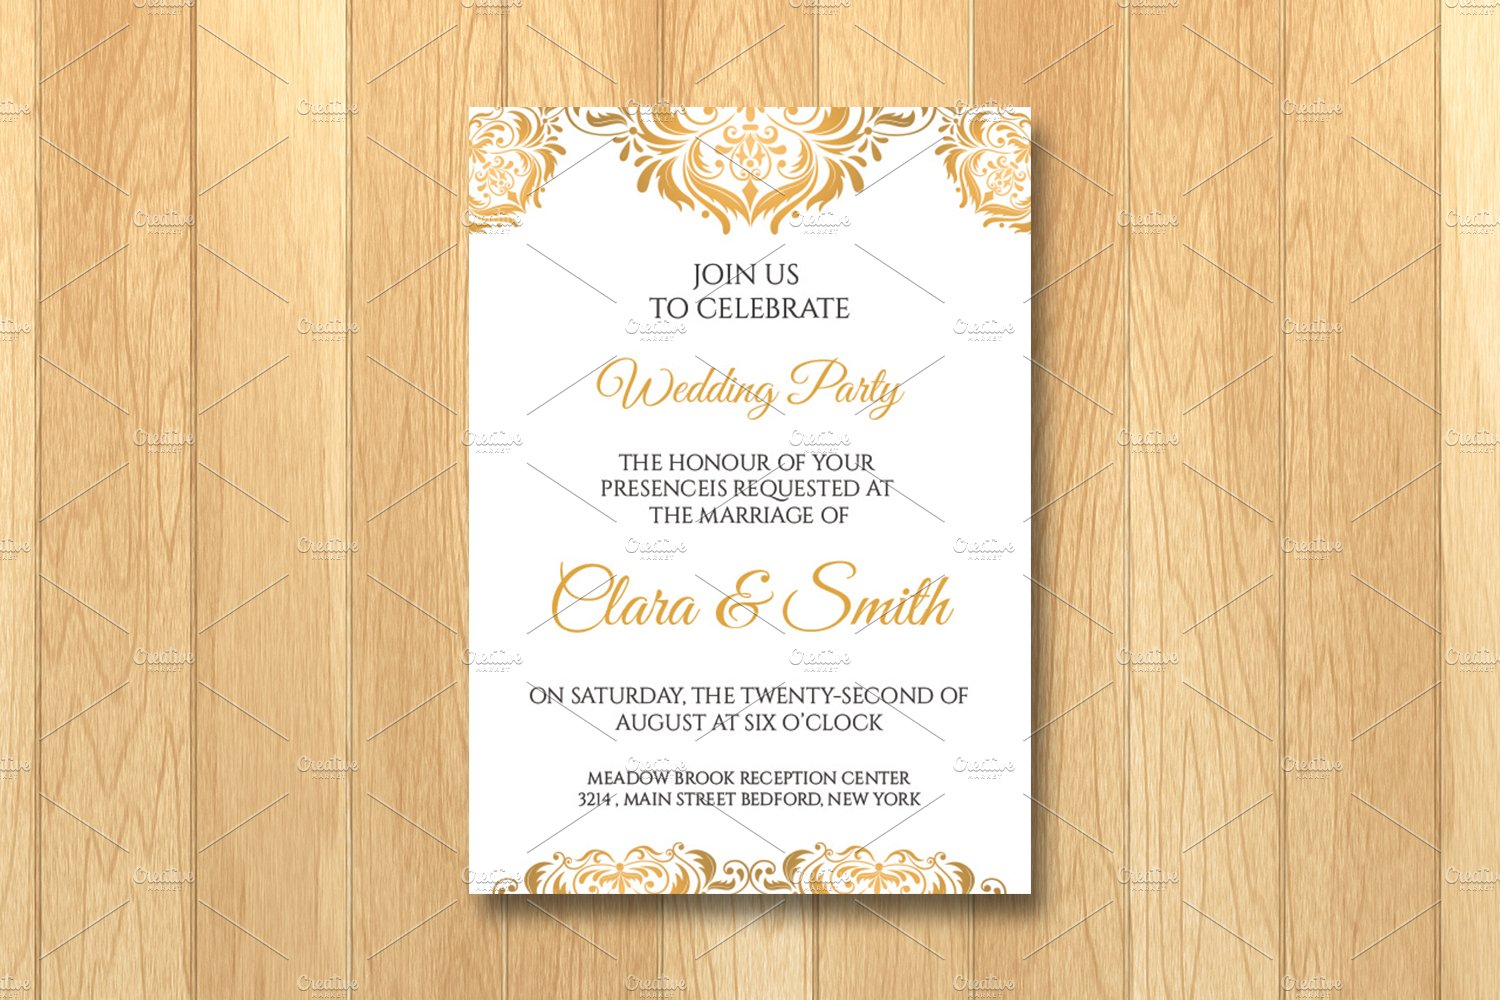 Wedding Invitation Card Template ~ Invitation Templates ~ Creative ...